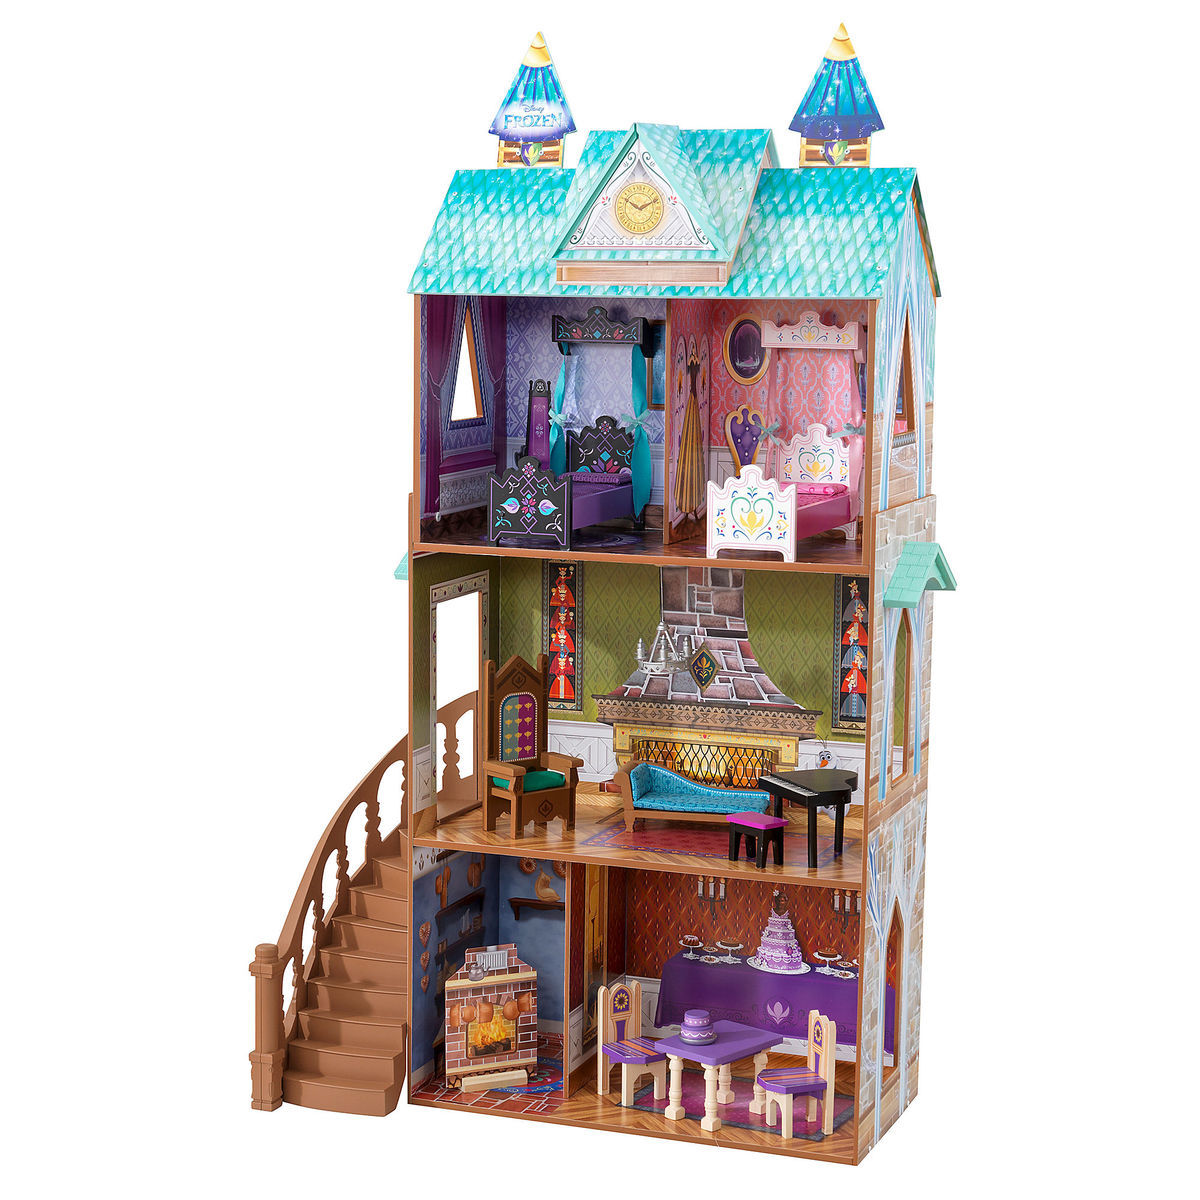 Product Image Of Frozen Arendelle Palace Dollhouse By KidKraft 1